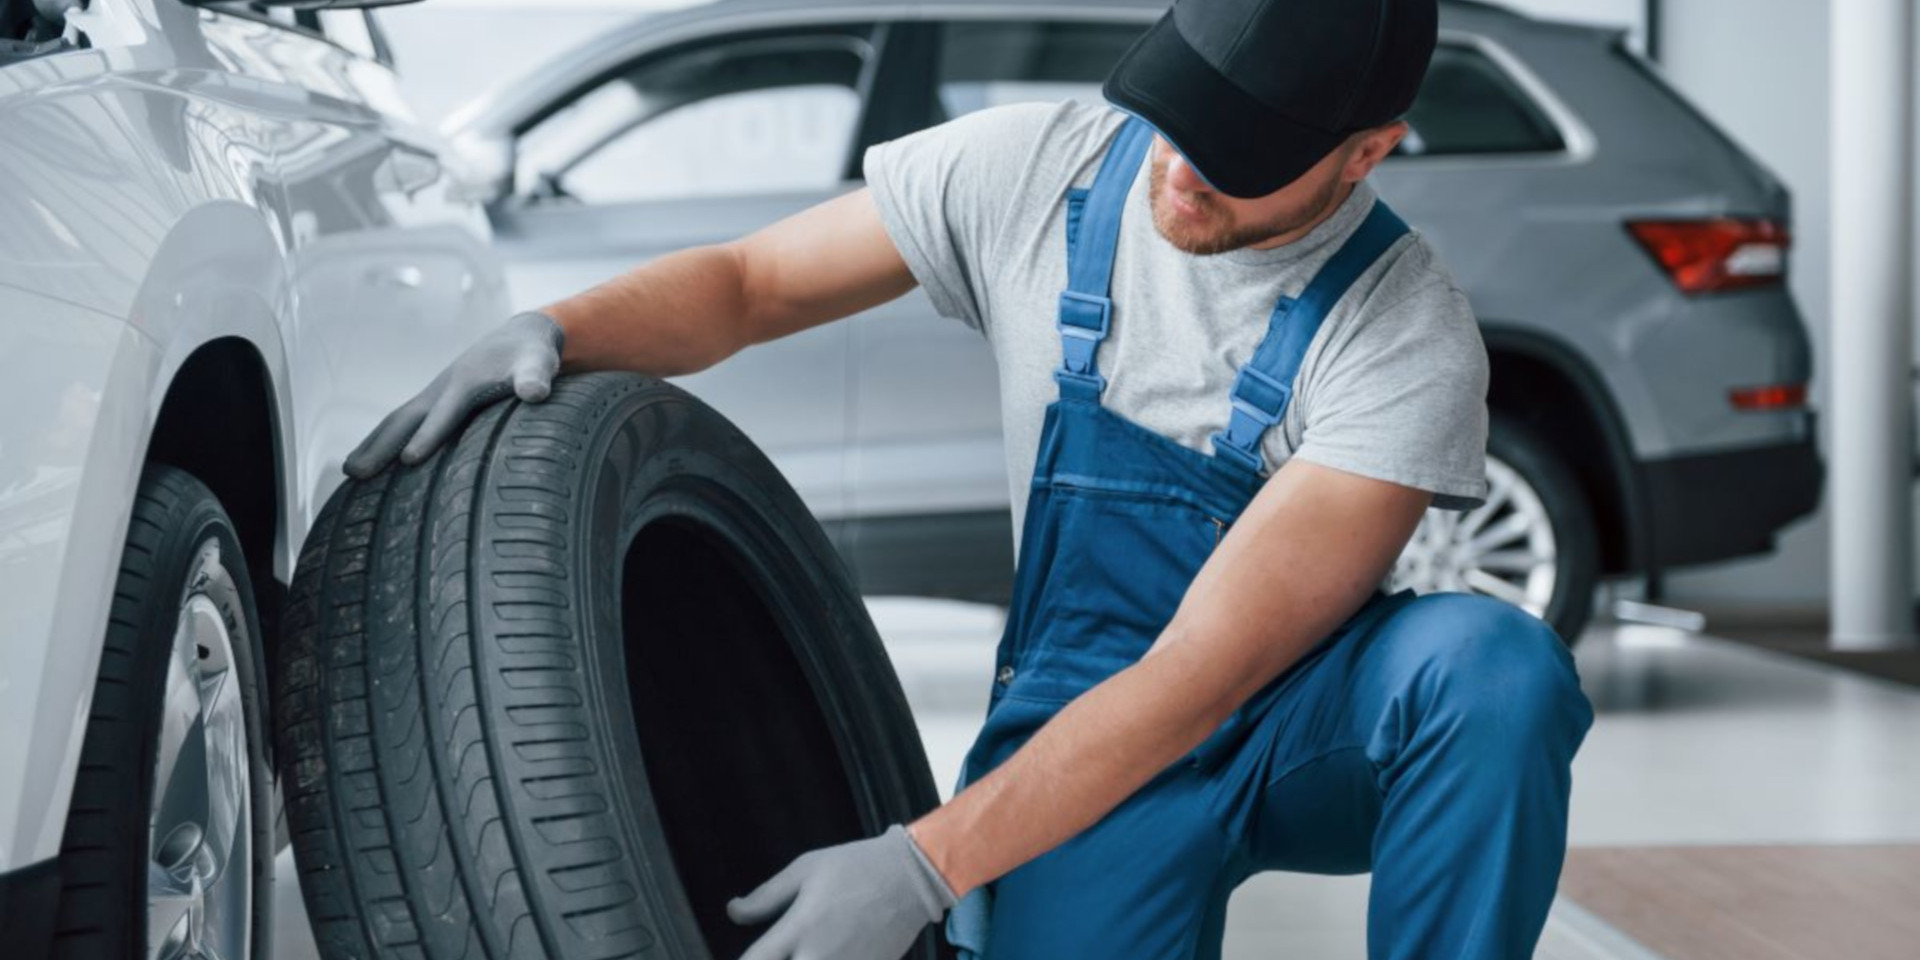 blog-maintenance-tips-for-summer-tires-feature